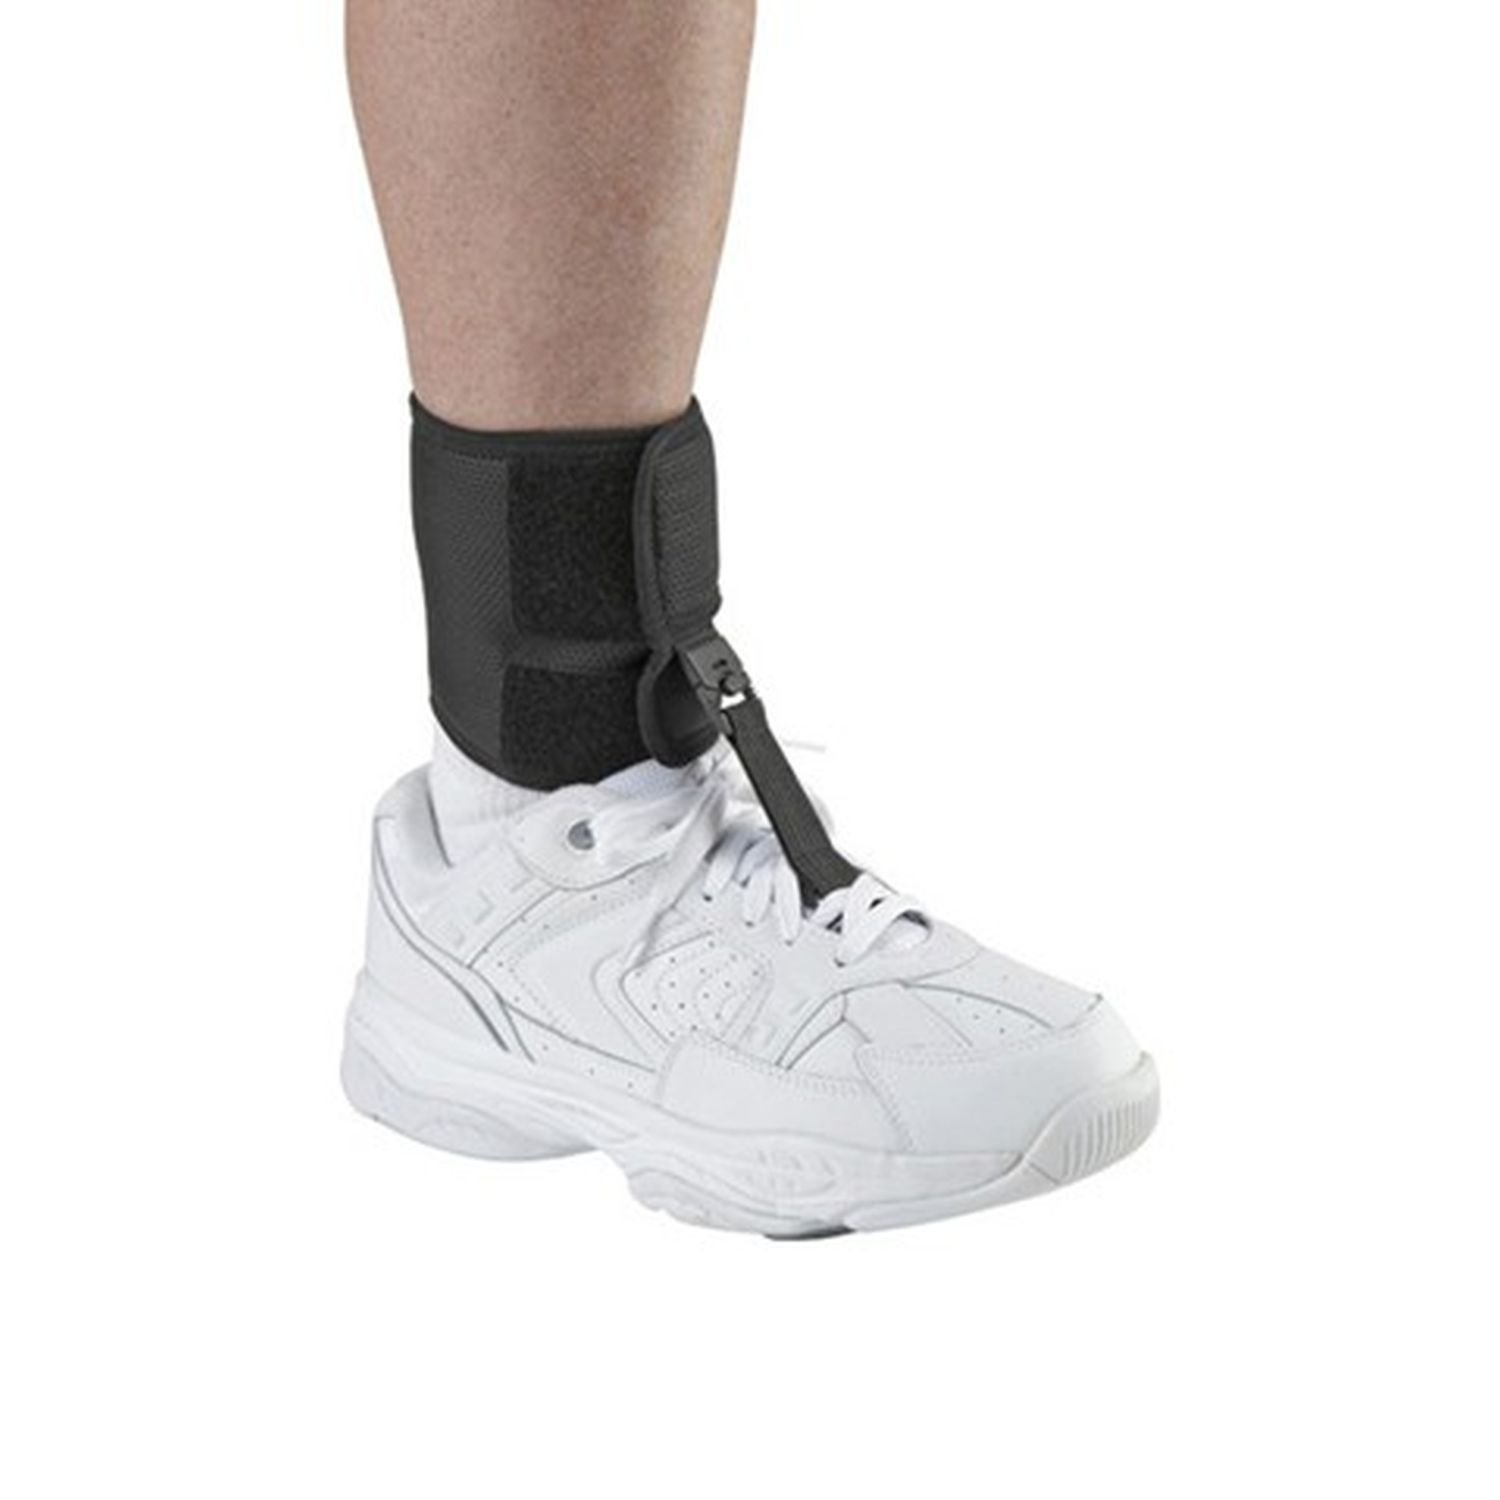 Ossur Foot-Up Drop Foot Brace 10.5-13'' Black - Orthosis Ankle Brace Support Comfort Cushioned Adjustable Wrap (X-Large) by Ossur